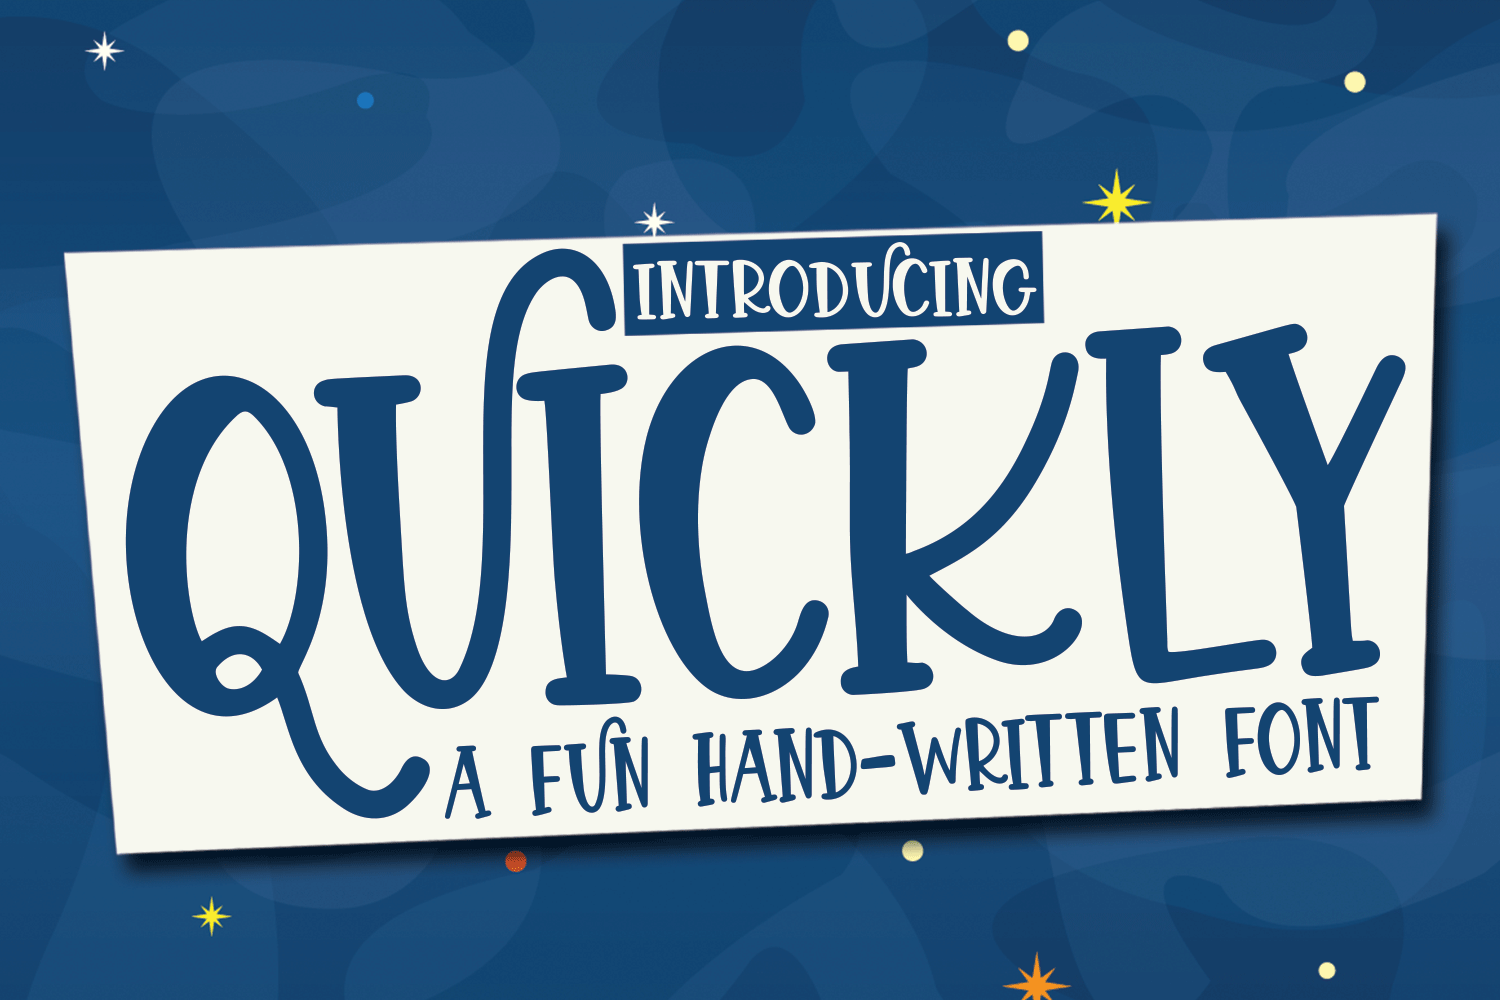 Quickly - A Fun Hand-Written Font example image 1